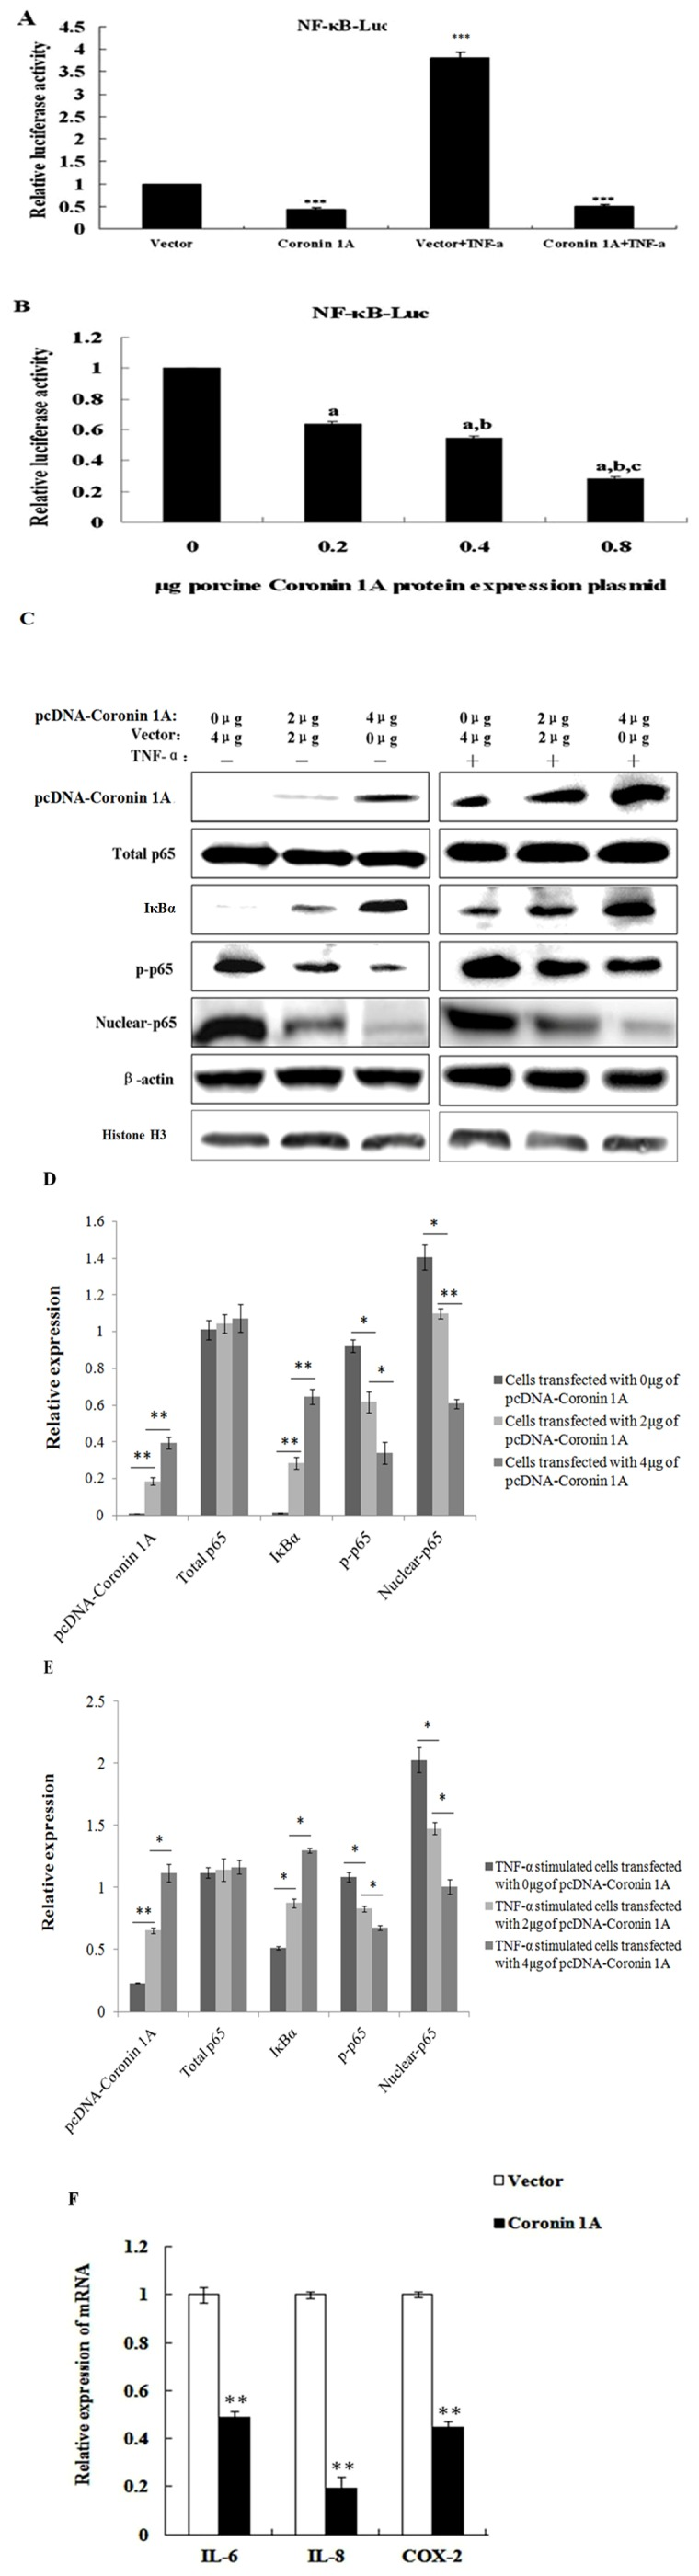 Reduction of NF-κB activation when porcine Coro1A was overexpressed. (A) PK-15 cells were co-transfected with the pNF-κB-luc reporter plasmid (0.2 µg), pRL-TK plasmid (0.05 µg), along with 0.6 µg of the expression plasmid encoding porcine Coro1A protein. Selected cells were stimulated by 20 ng/ml TNF-α at 18 h post-transfection, and cell extracts were prepared for the dual-luciferase activity at 6 h after this treatment. *** P